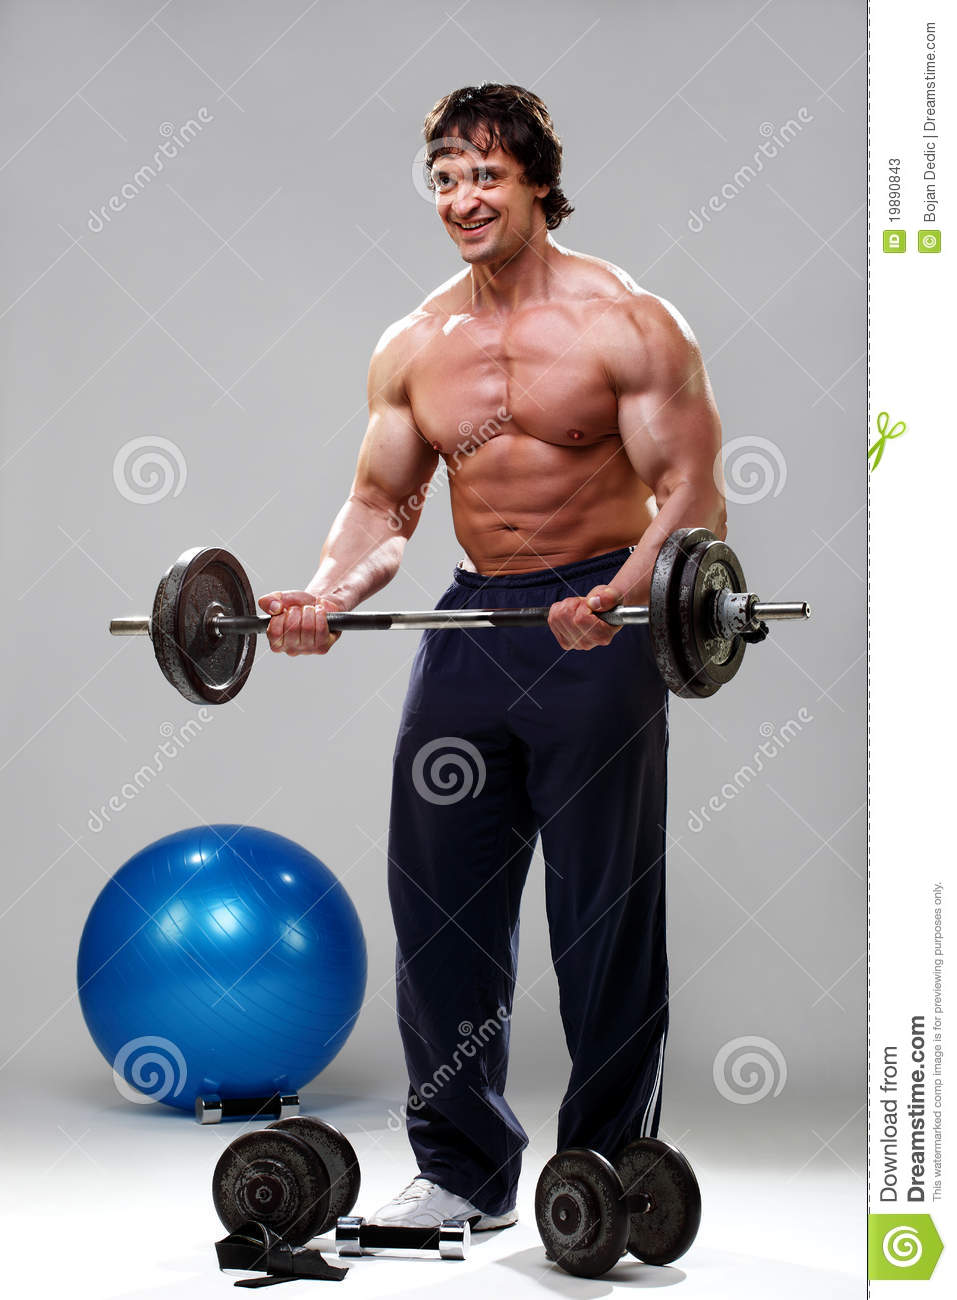 Bodybuilder Lifting Weights Stock Image - Image: 22721603